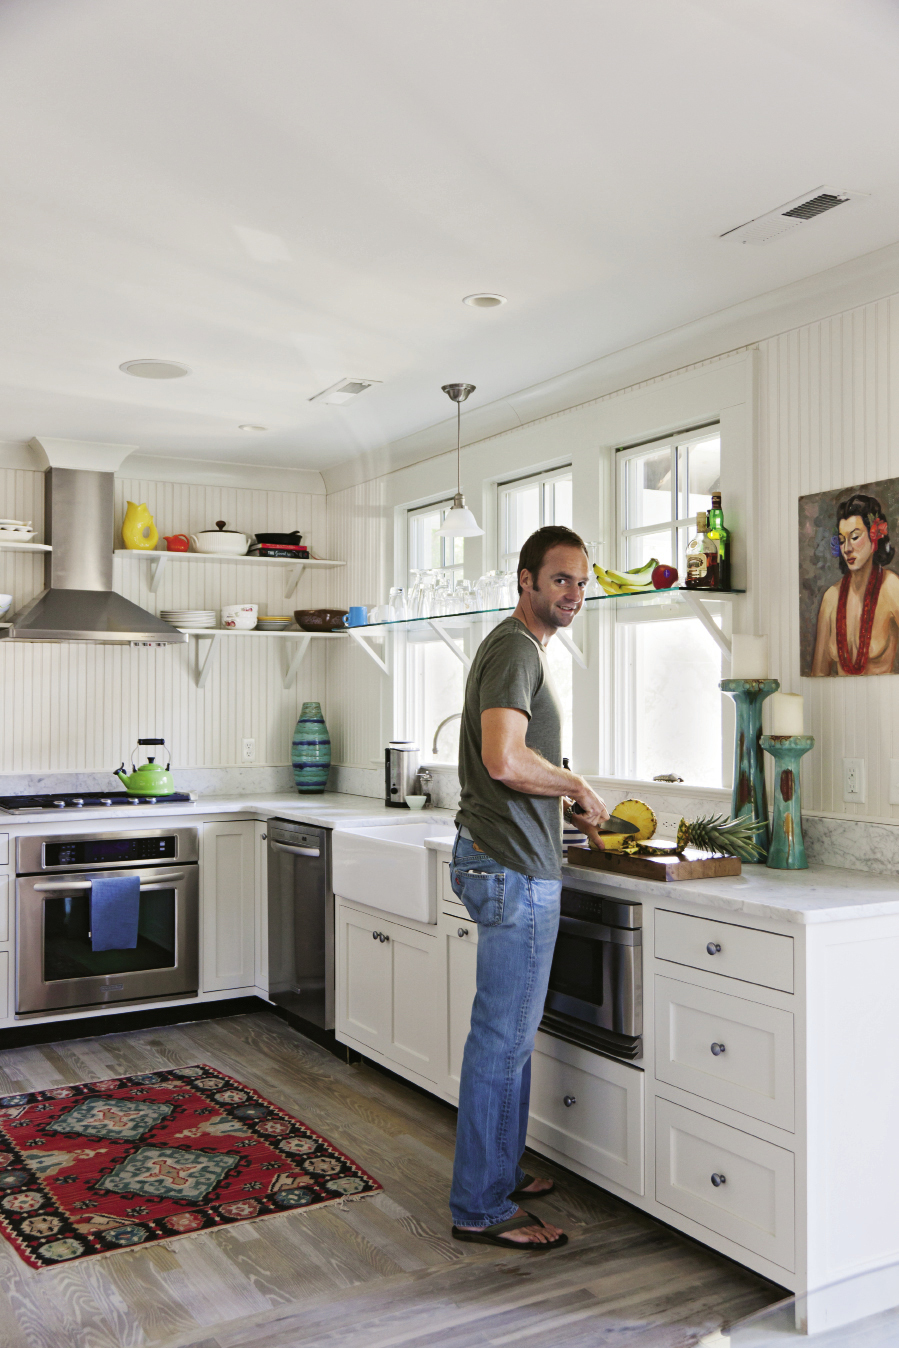 Fresh take: Colin Regan's interior renovation includes addition of a built-in window seat (left)